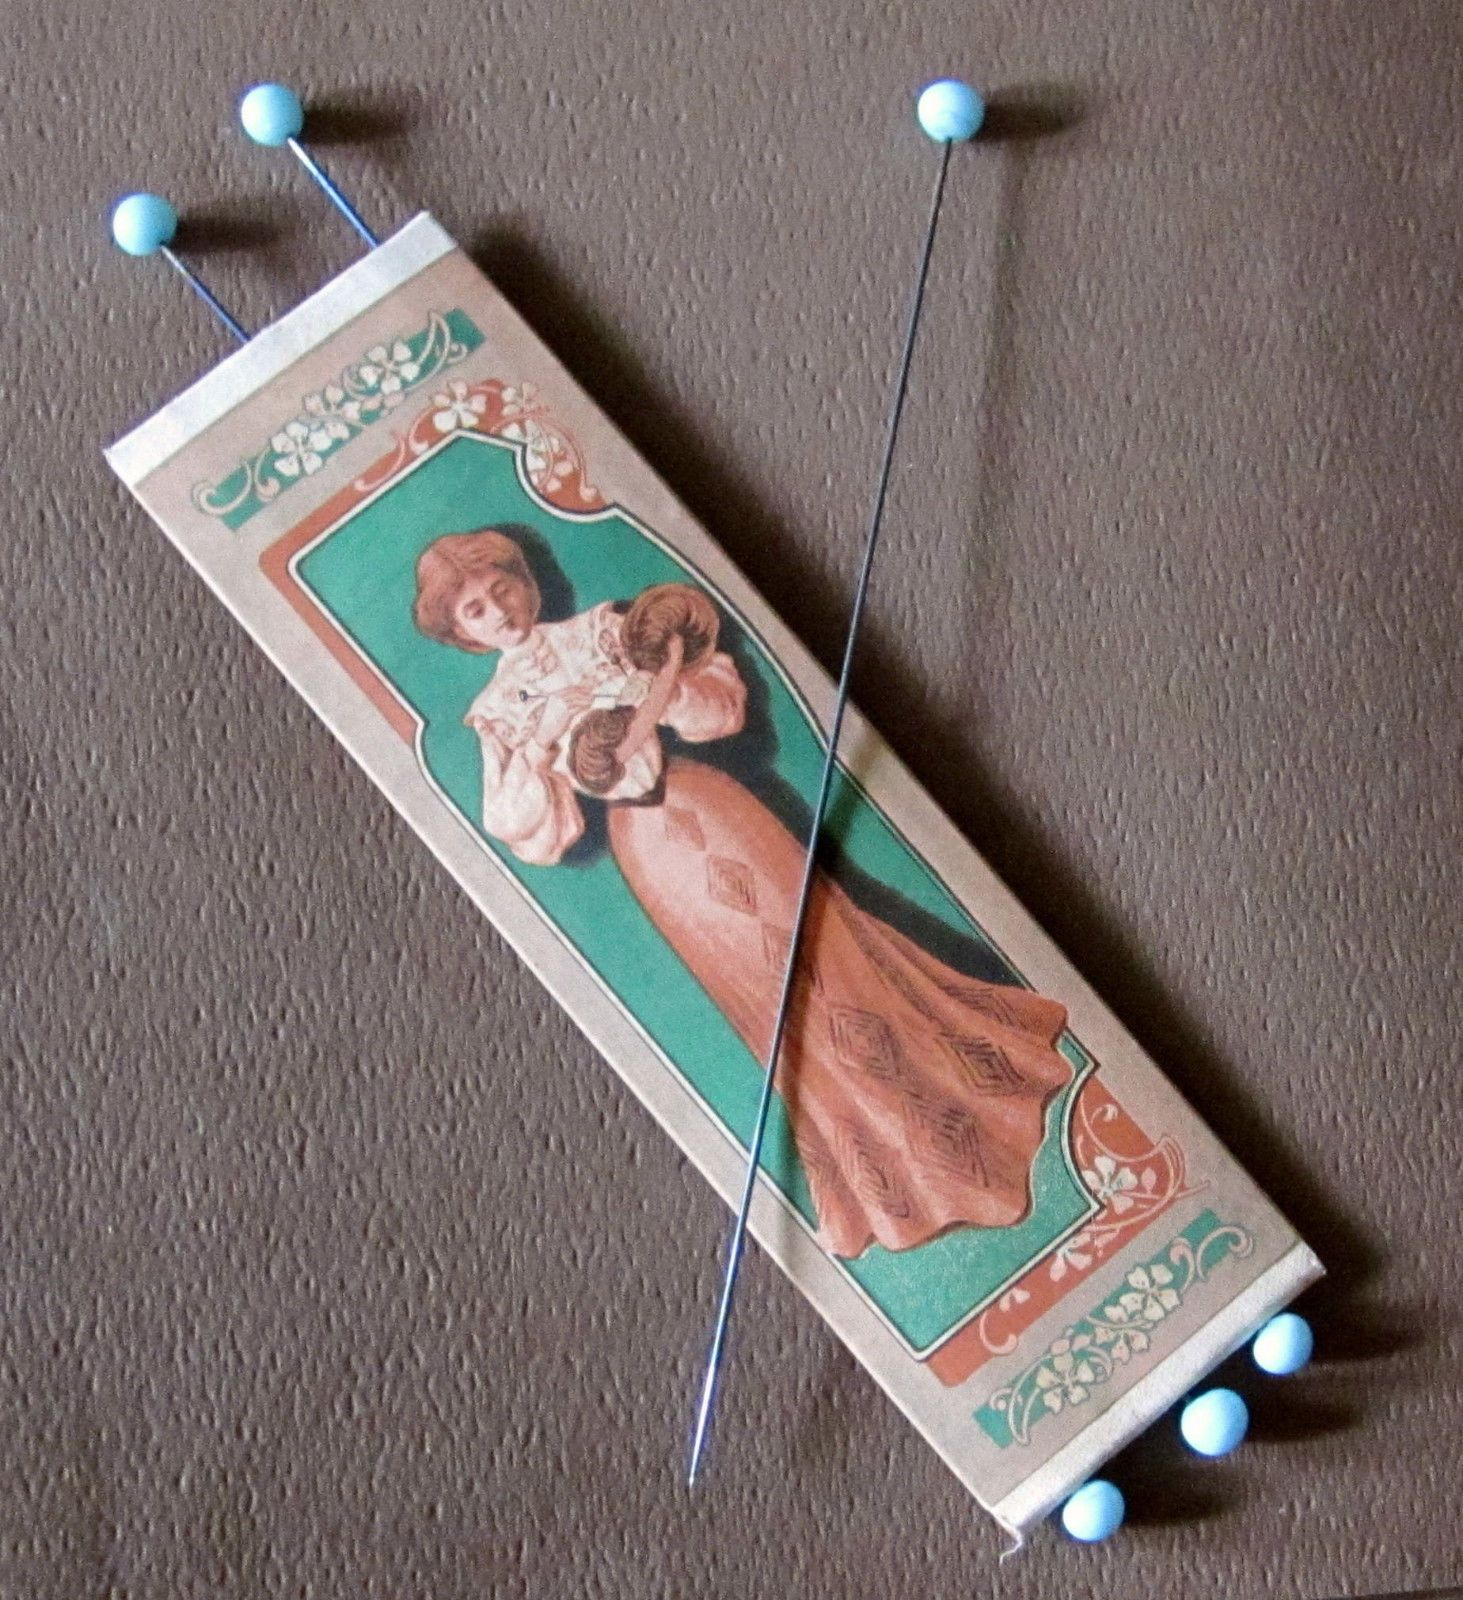 Baby crib for sale redditch - Details About Fabulous Antique Blue Glass Hat Pin Set 6 Orig Adv Package Redditch England